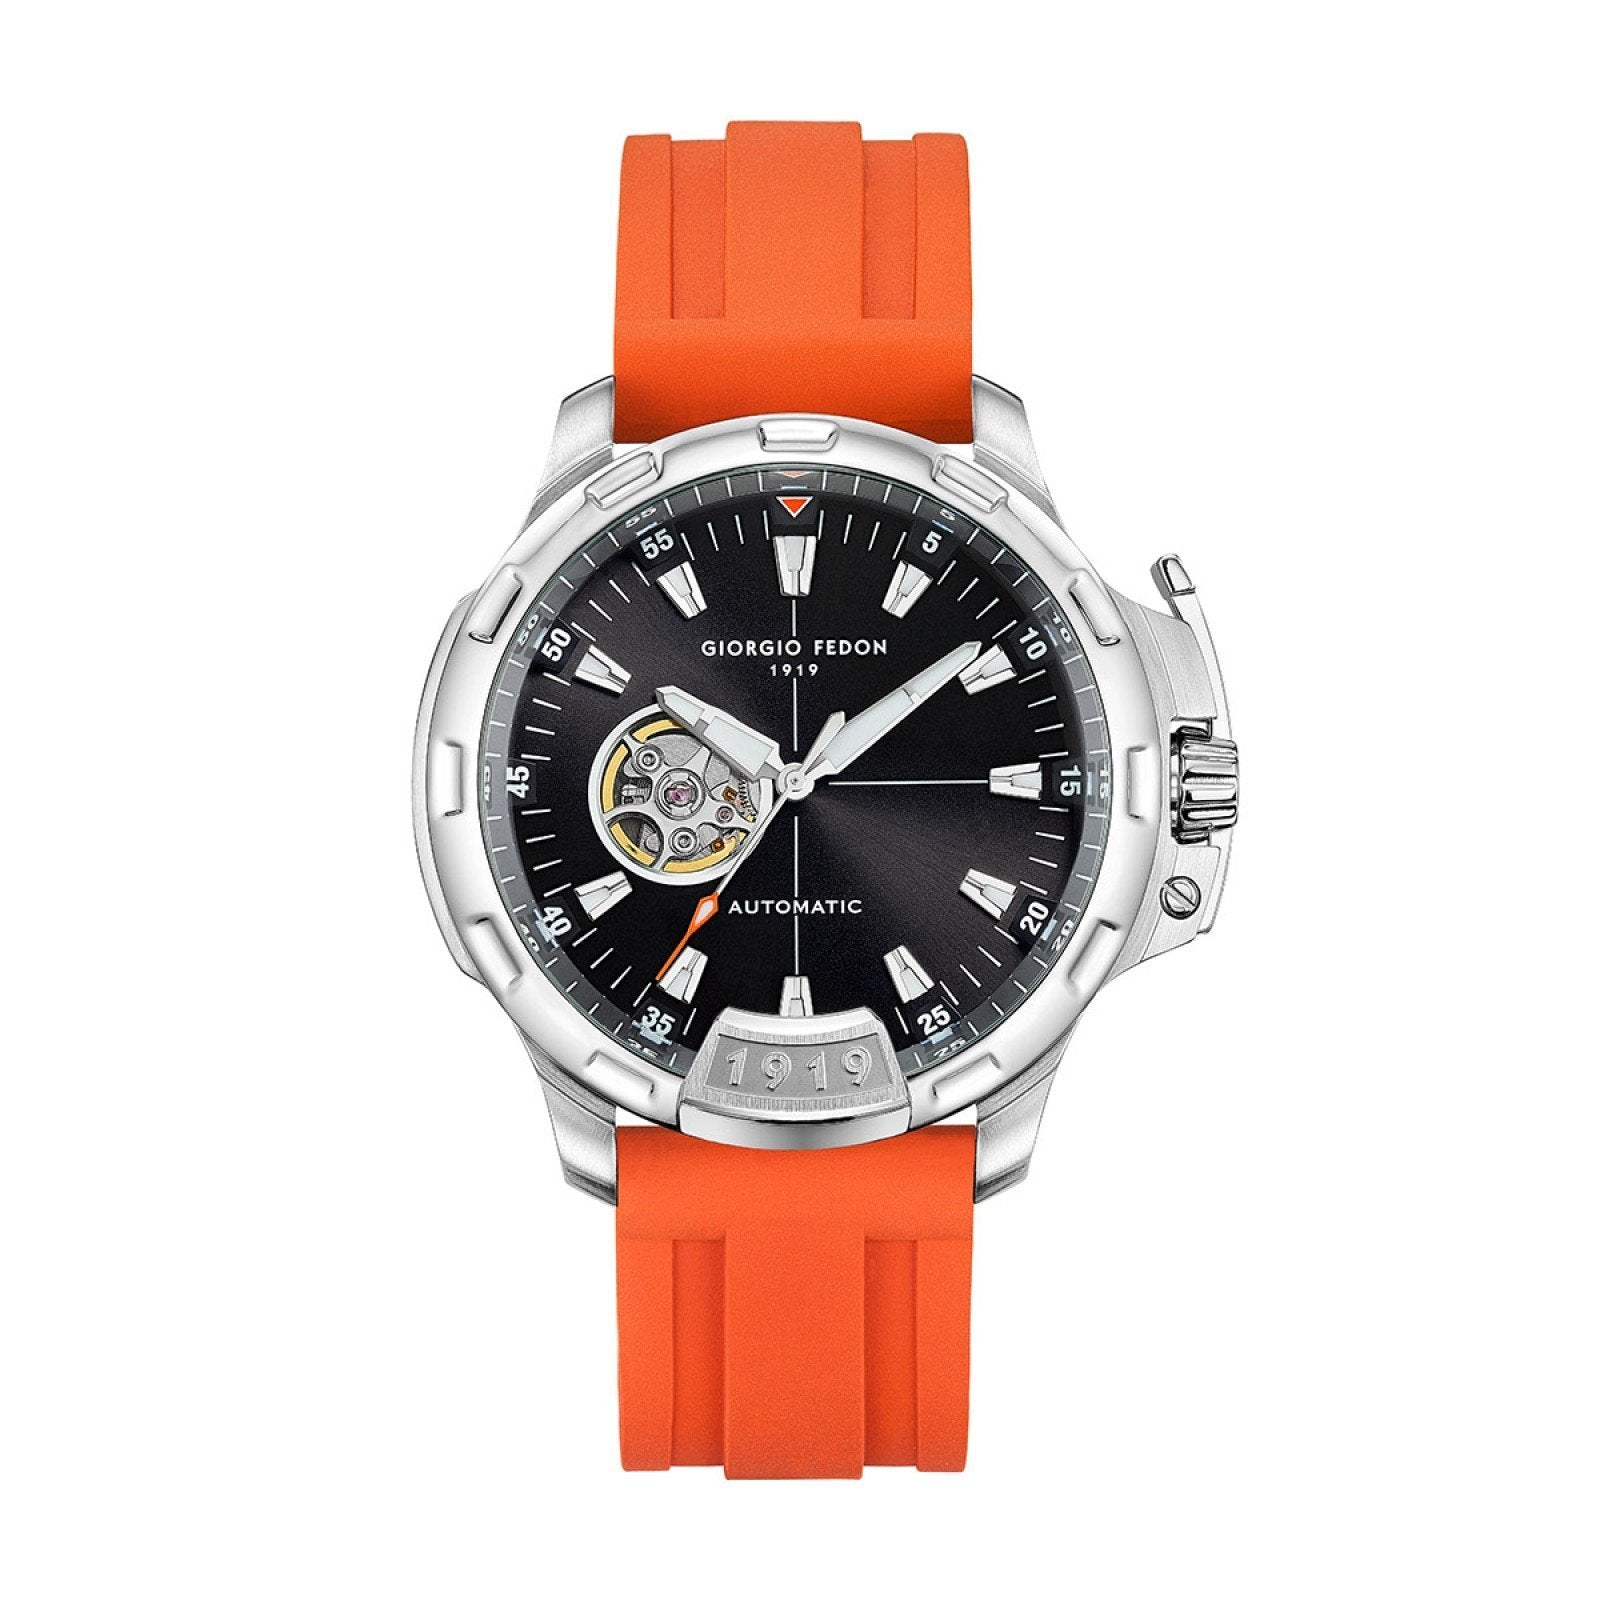 Giorgio Fedon Timeless IX Orange - Watches & Crystals